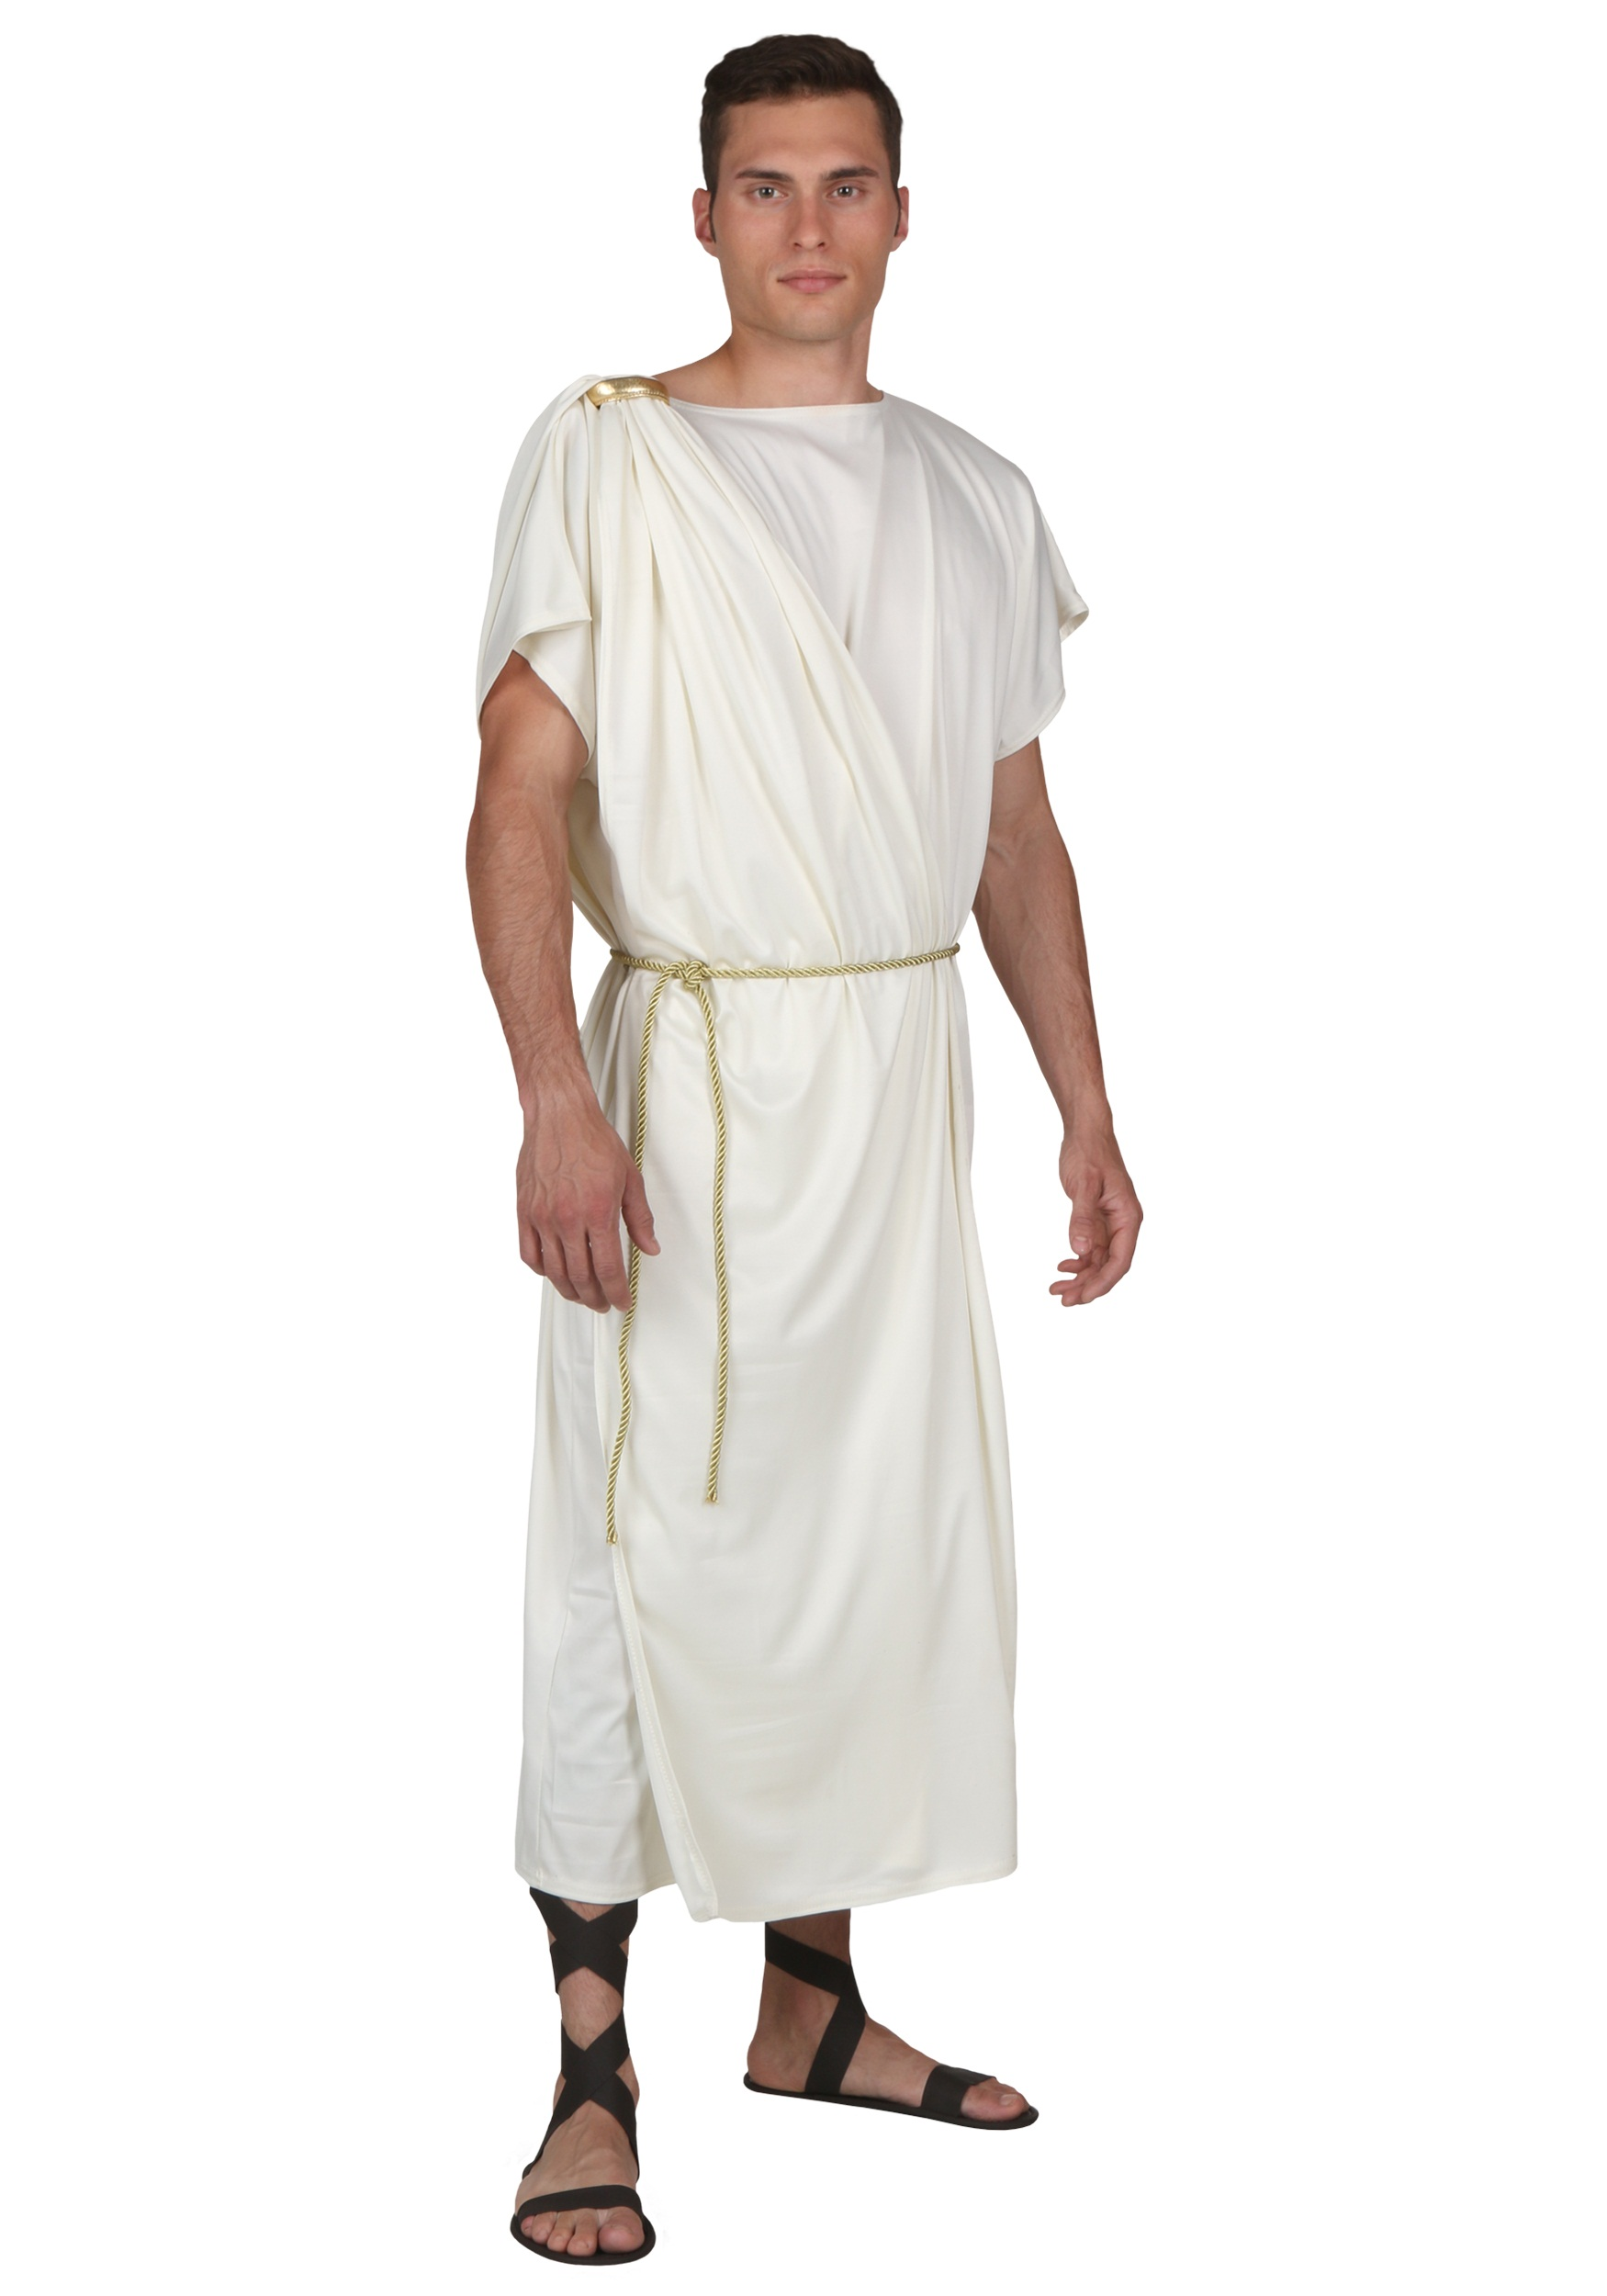 Plus Mens Toga  sc 1 st  Halloween Costumes & Plus Size Menu0027s Toga 2X